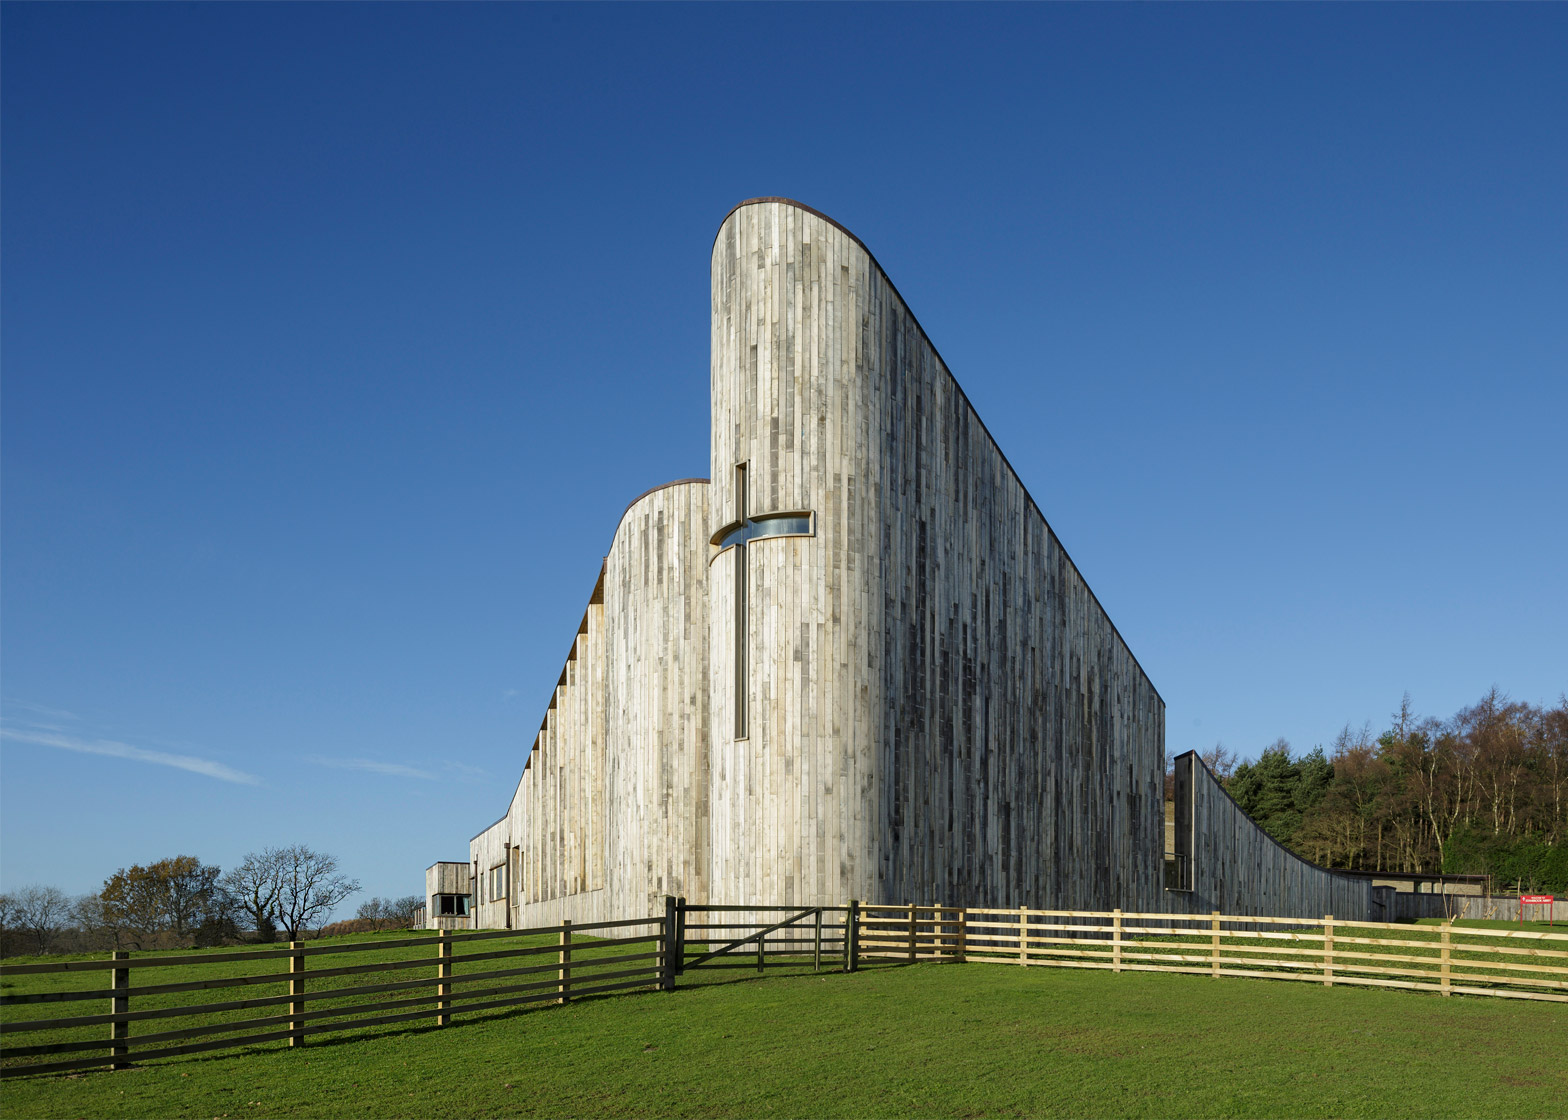 Stanbrook Abbey by Feilden Clegg Bradley Studios. Photograph by Peter Cook